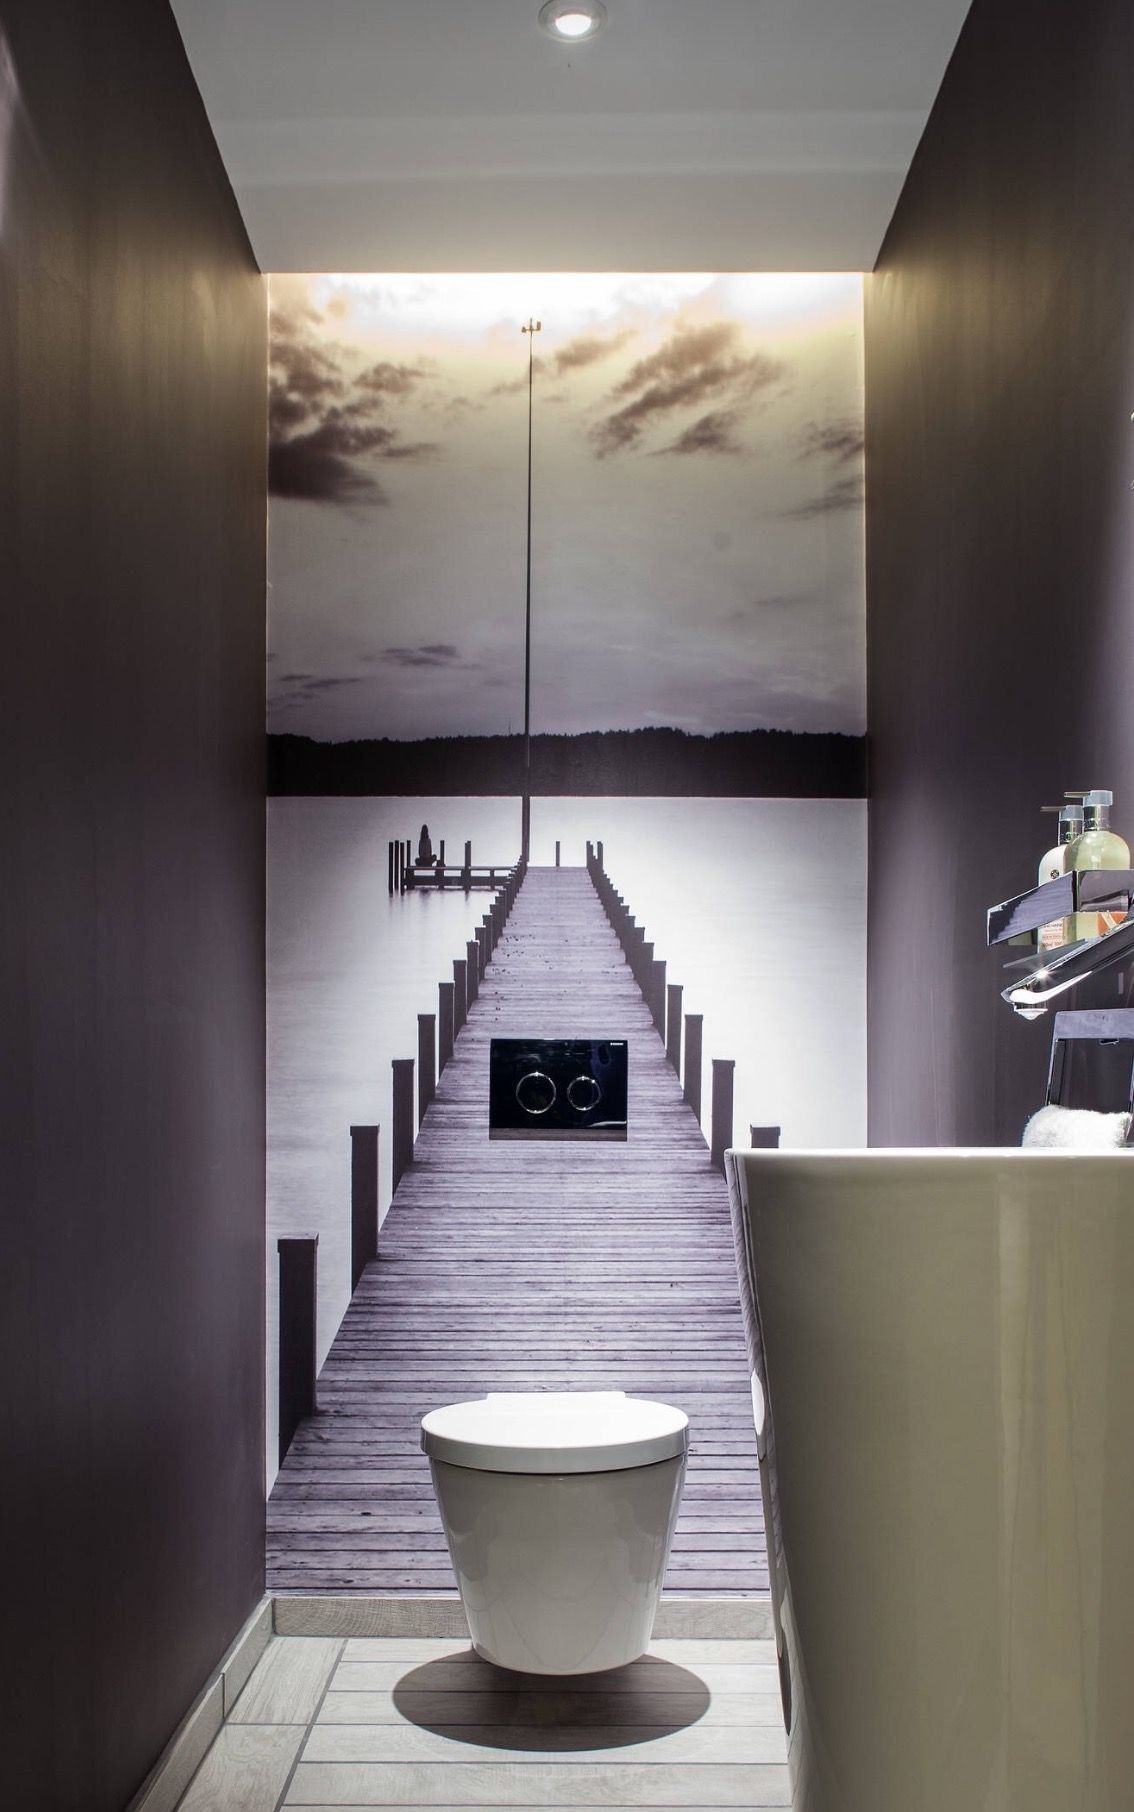 Fototapete Für Dusche Houzz Vastu Interior Design Ltd Bathroom Bathroom Small